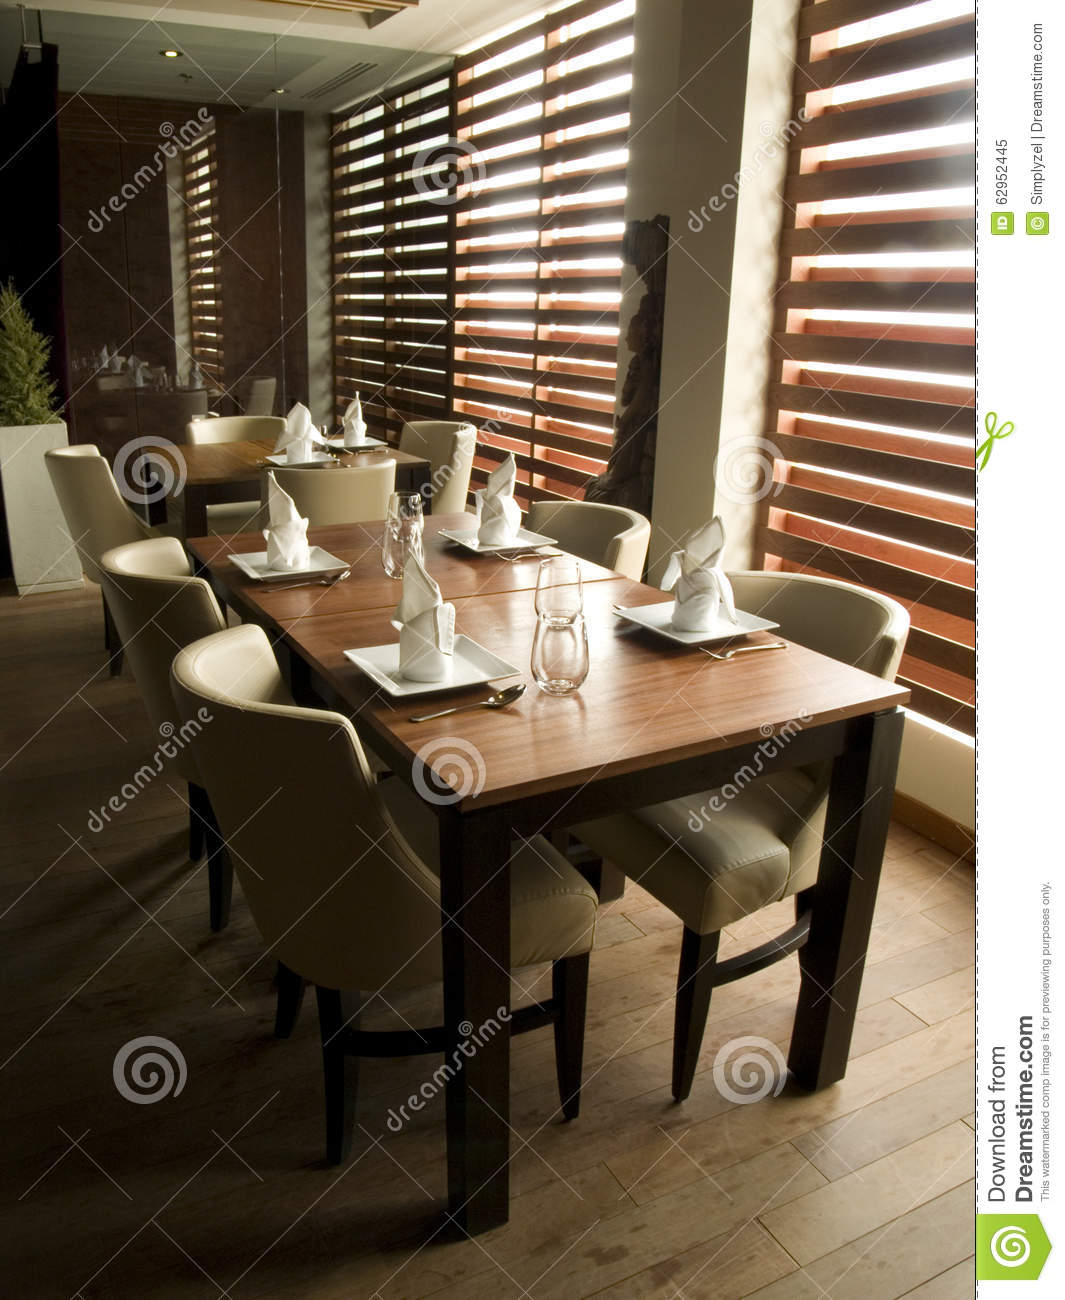 Modern restaurant table setting